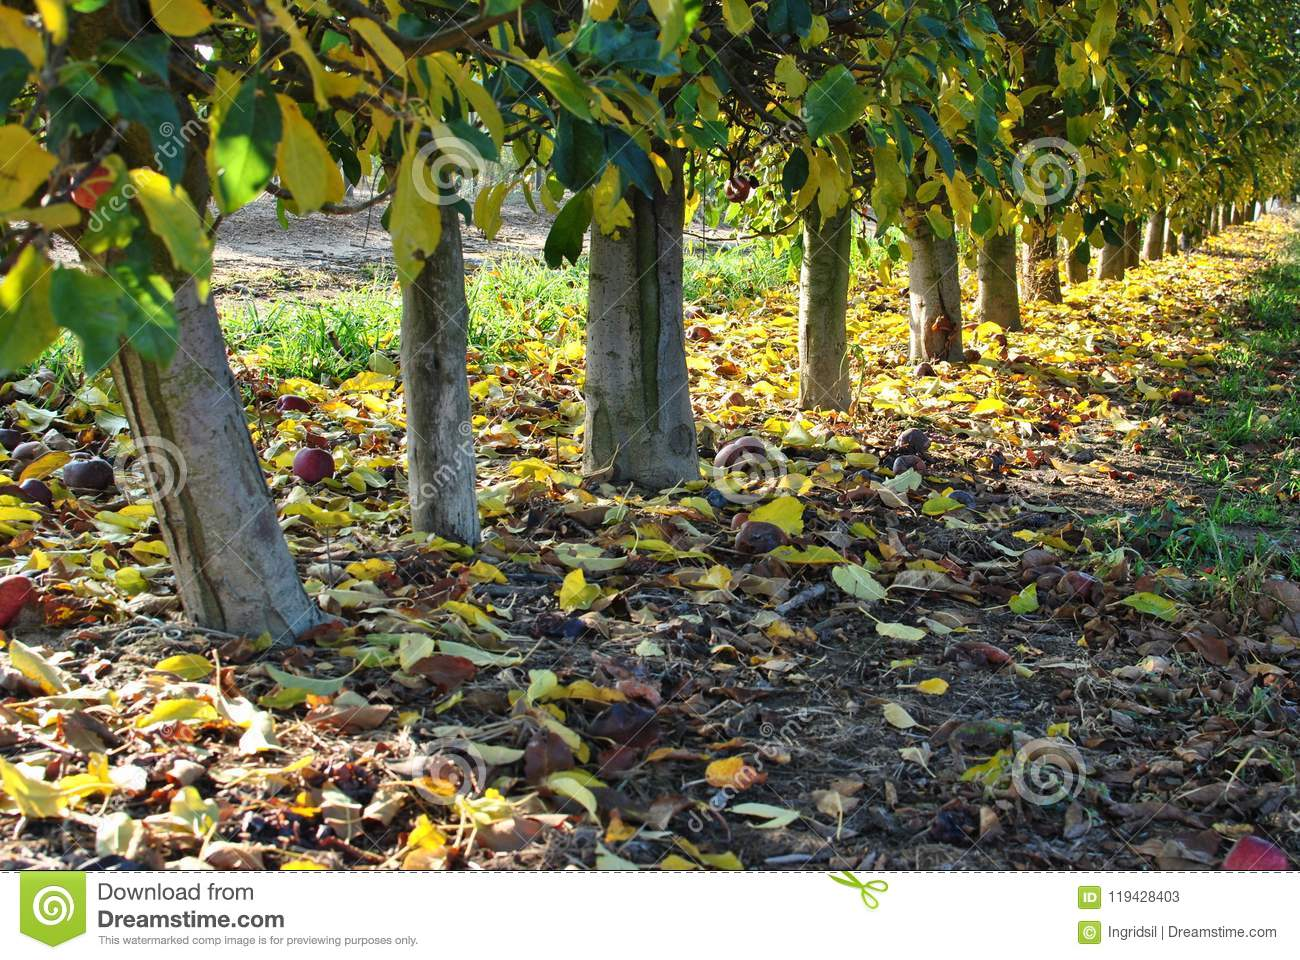 Rows of pear trees at sunrise. Autumn. Fallen yellow leaves.